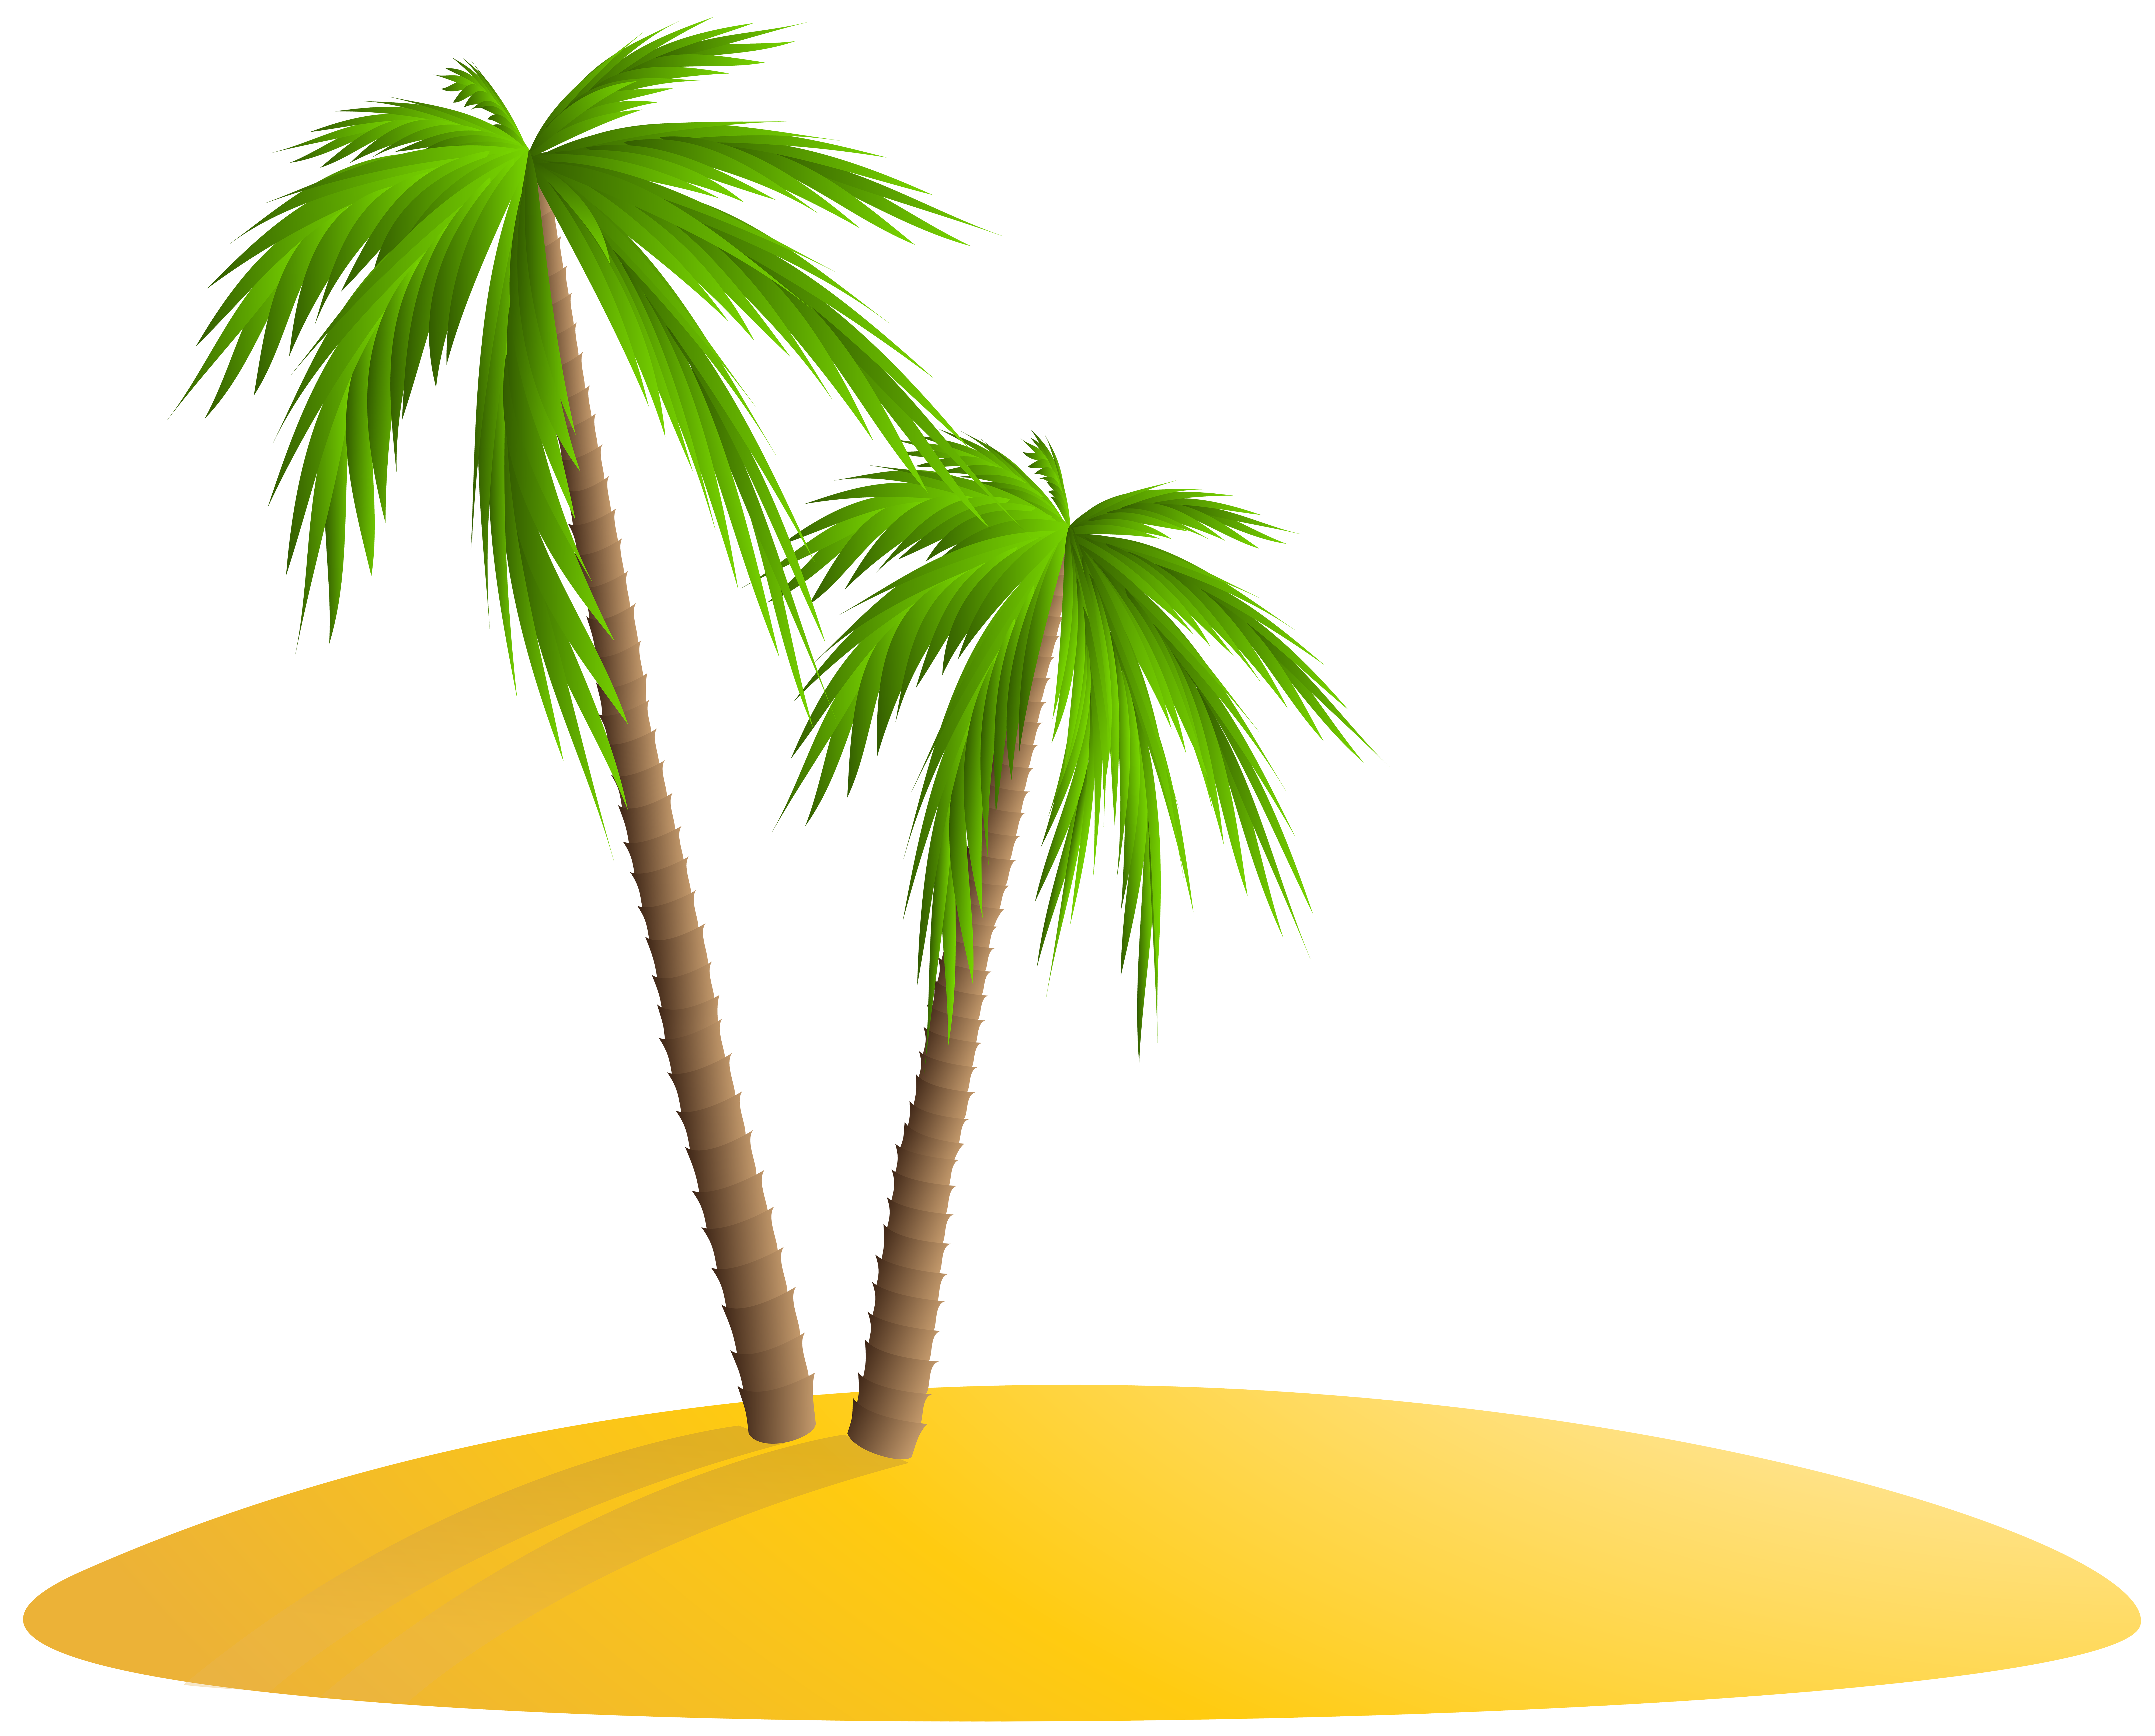 Palm png clip art. Island clipart